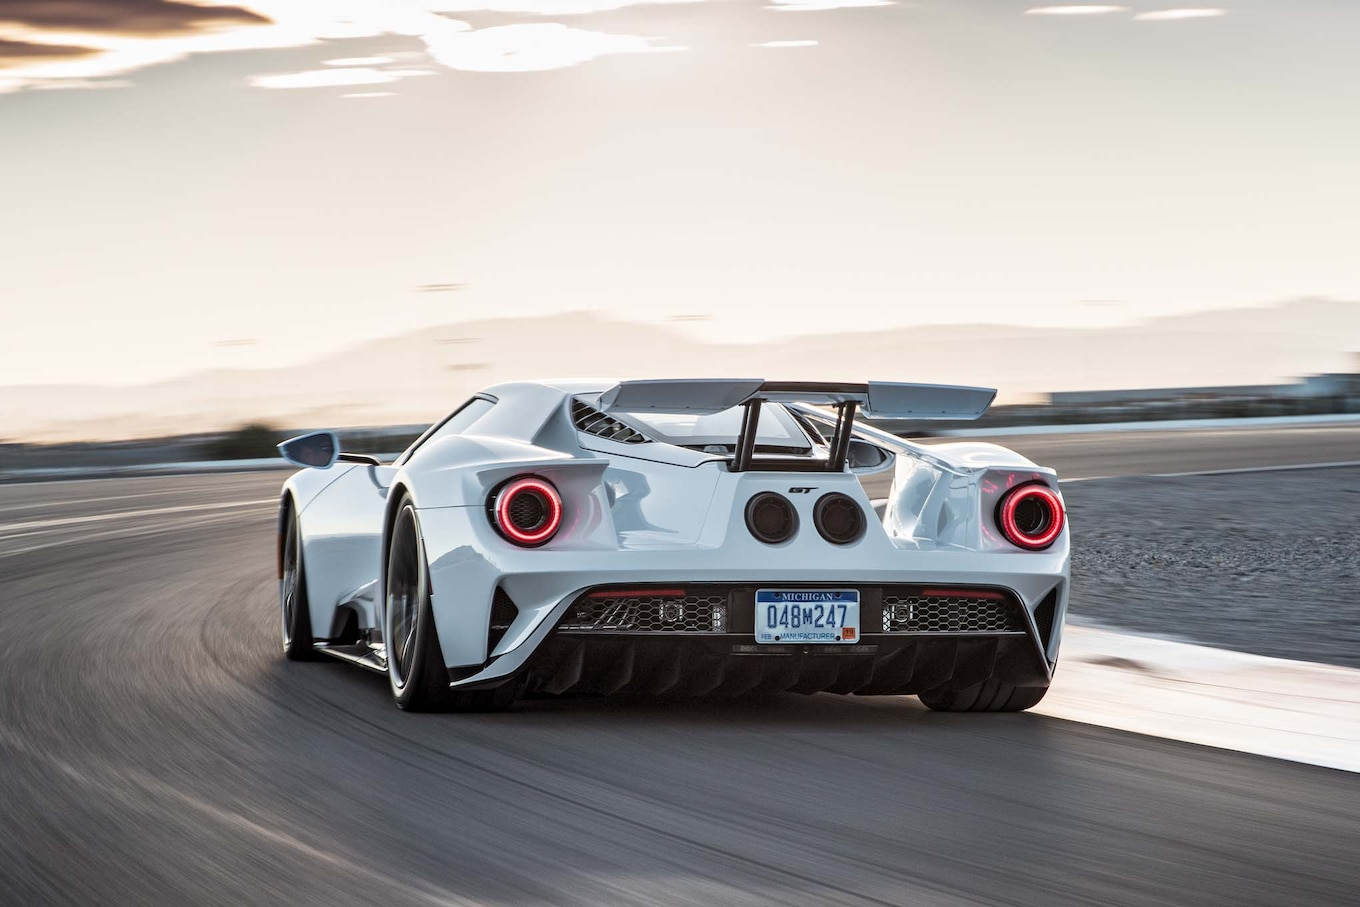 Mazda Race Car Wallpaper 2017 Ford Gt Epa Rated 11 18 Mpg City Highway Motor Trend